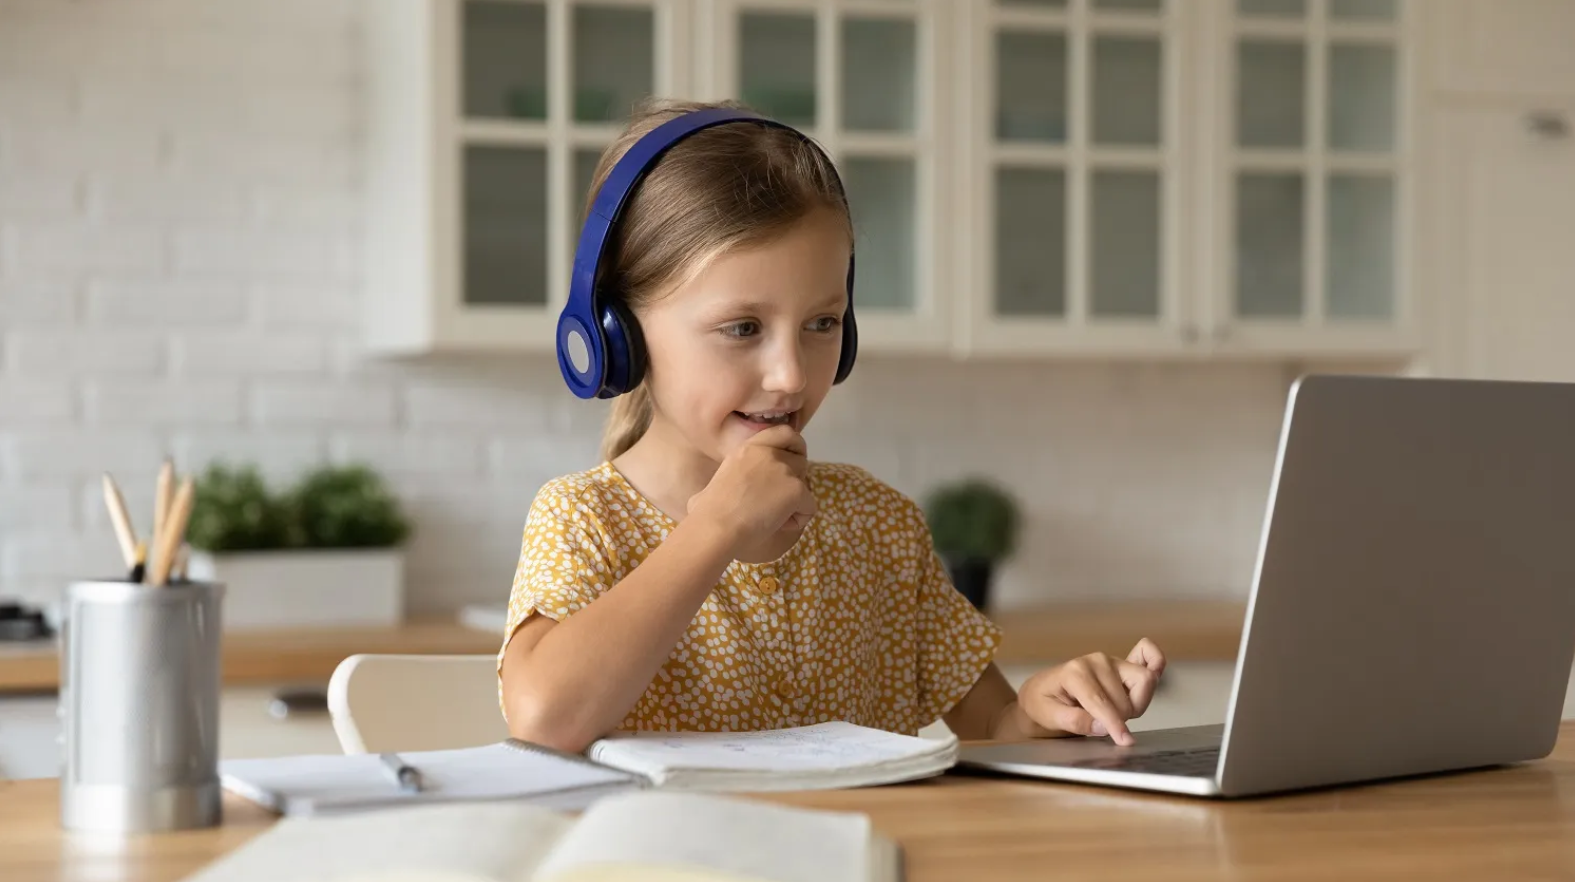 A child using headphones, looking at a laptop, seated at a table